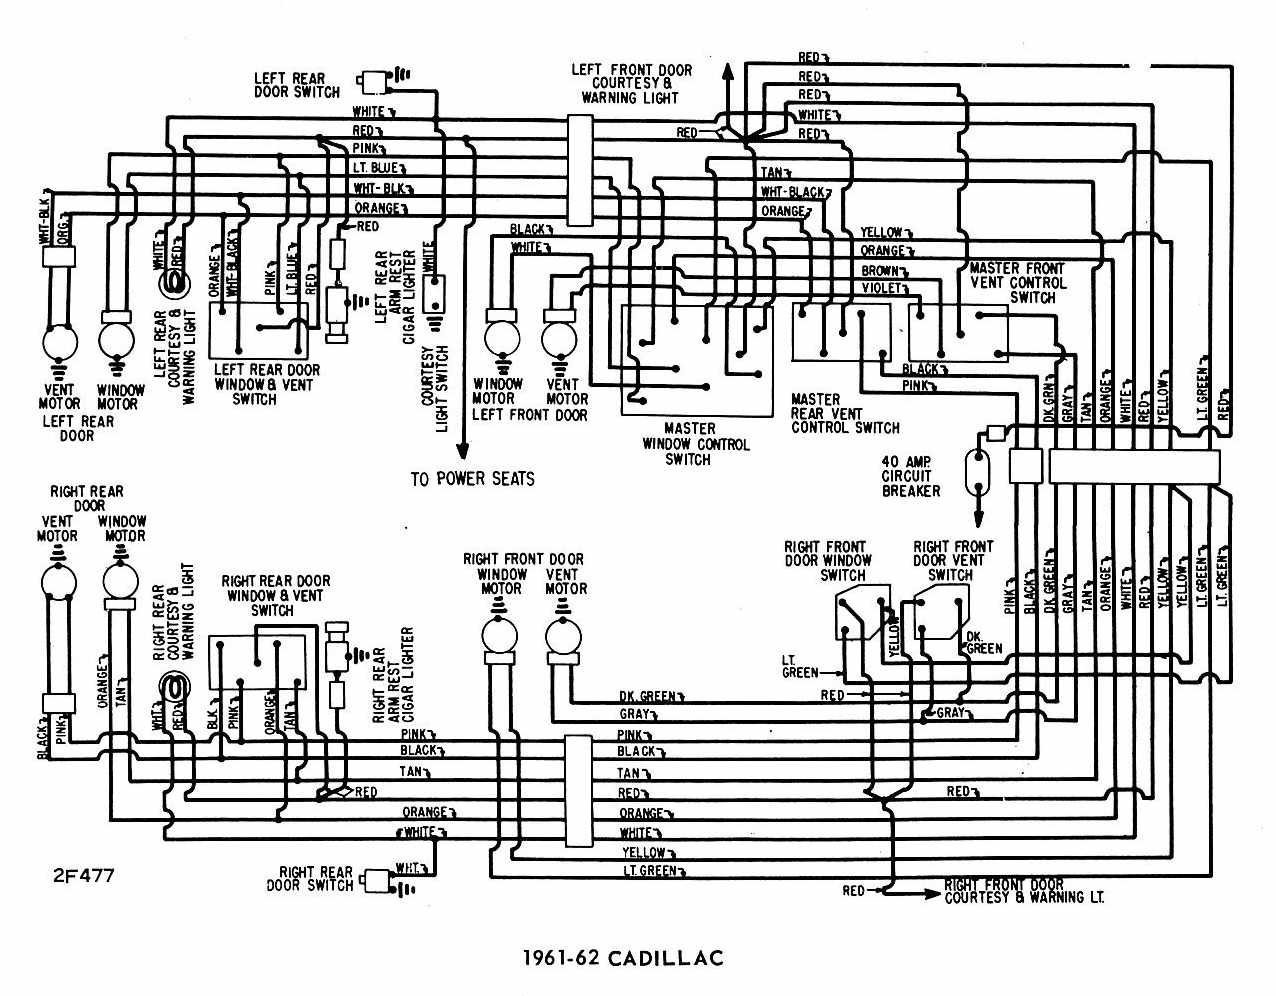 Cadillac 1961 1962 Windows Wiring on tiger truck wiring diagram